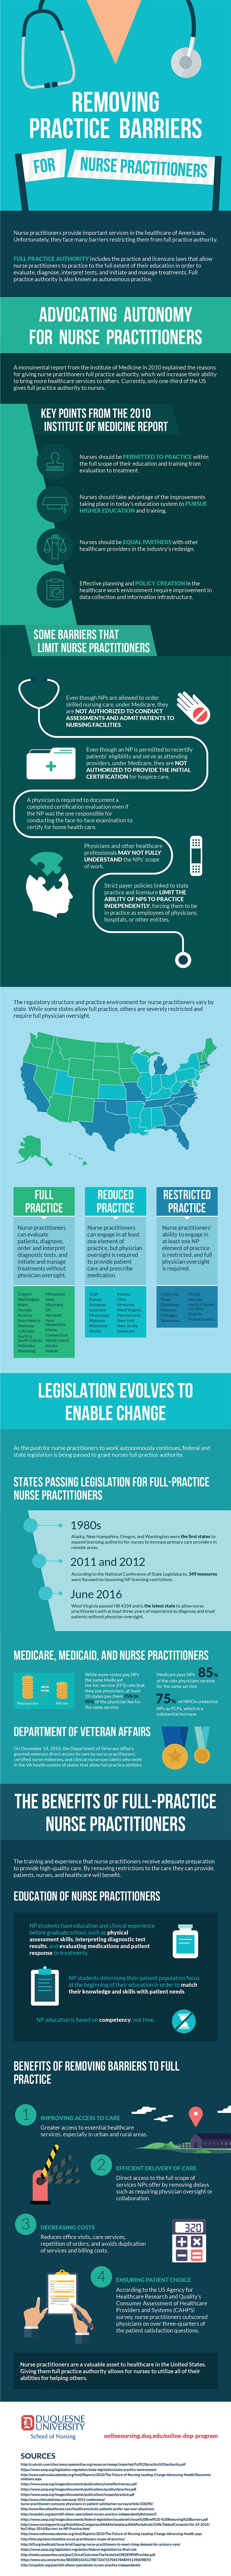 Removing Practice Barriers For Nurse Practitioners